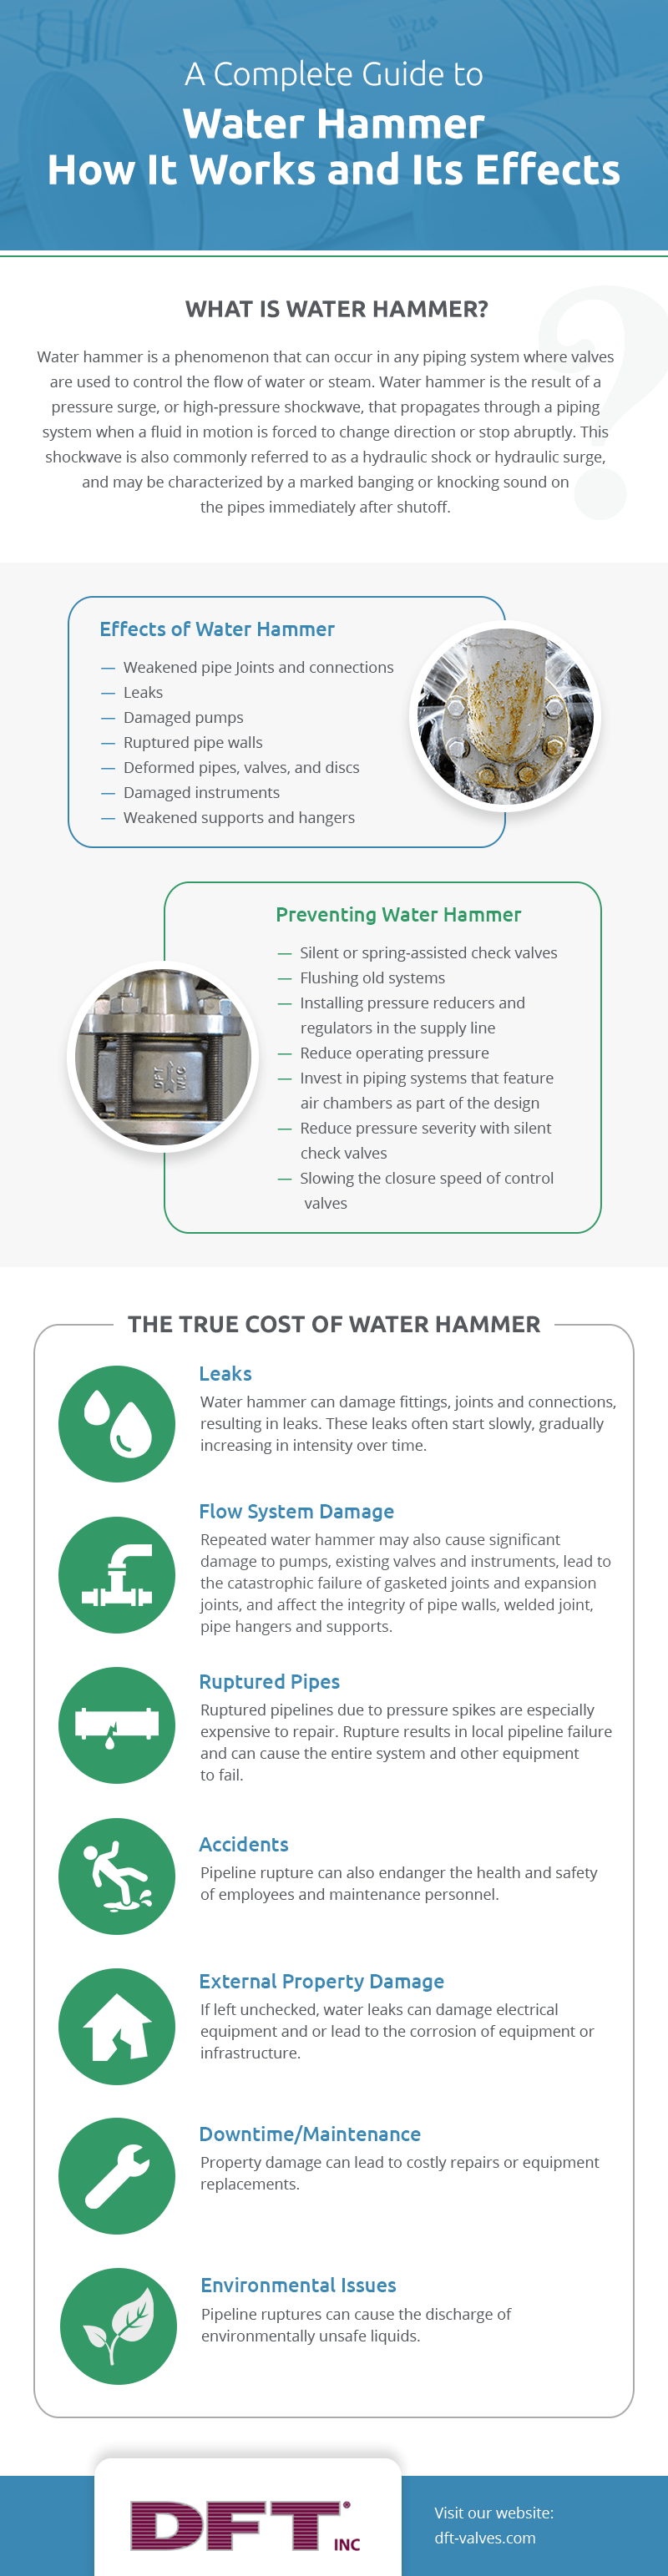 Water Hammer Infographic